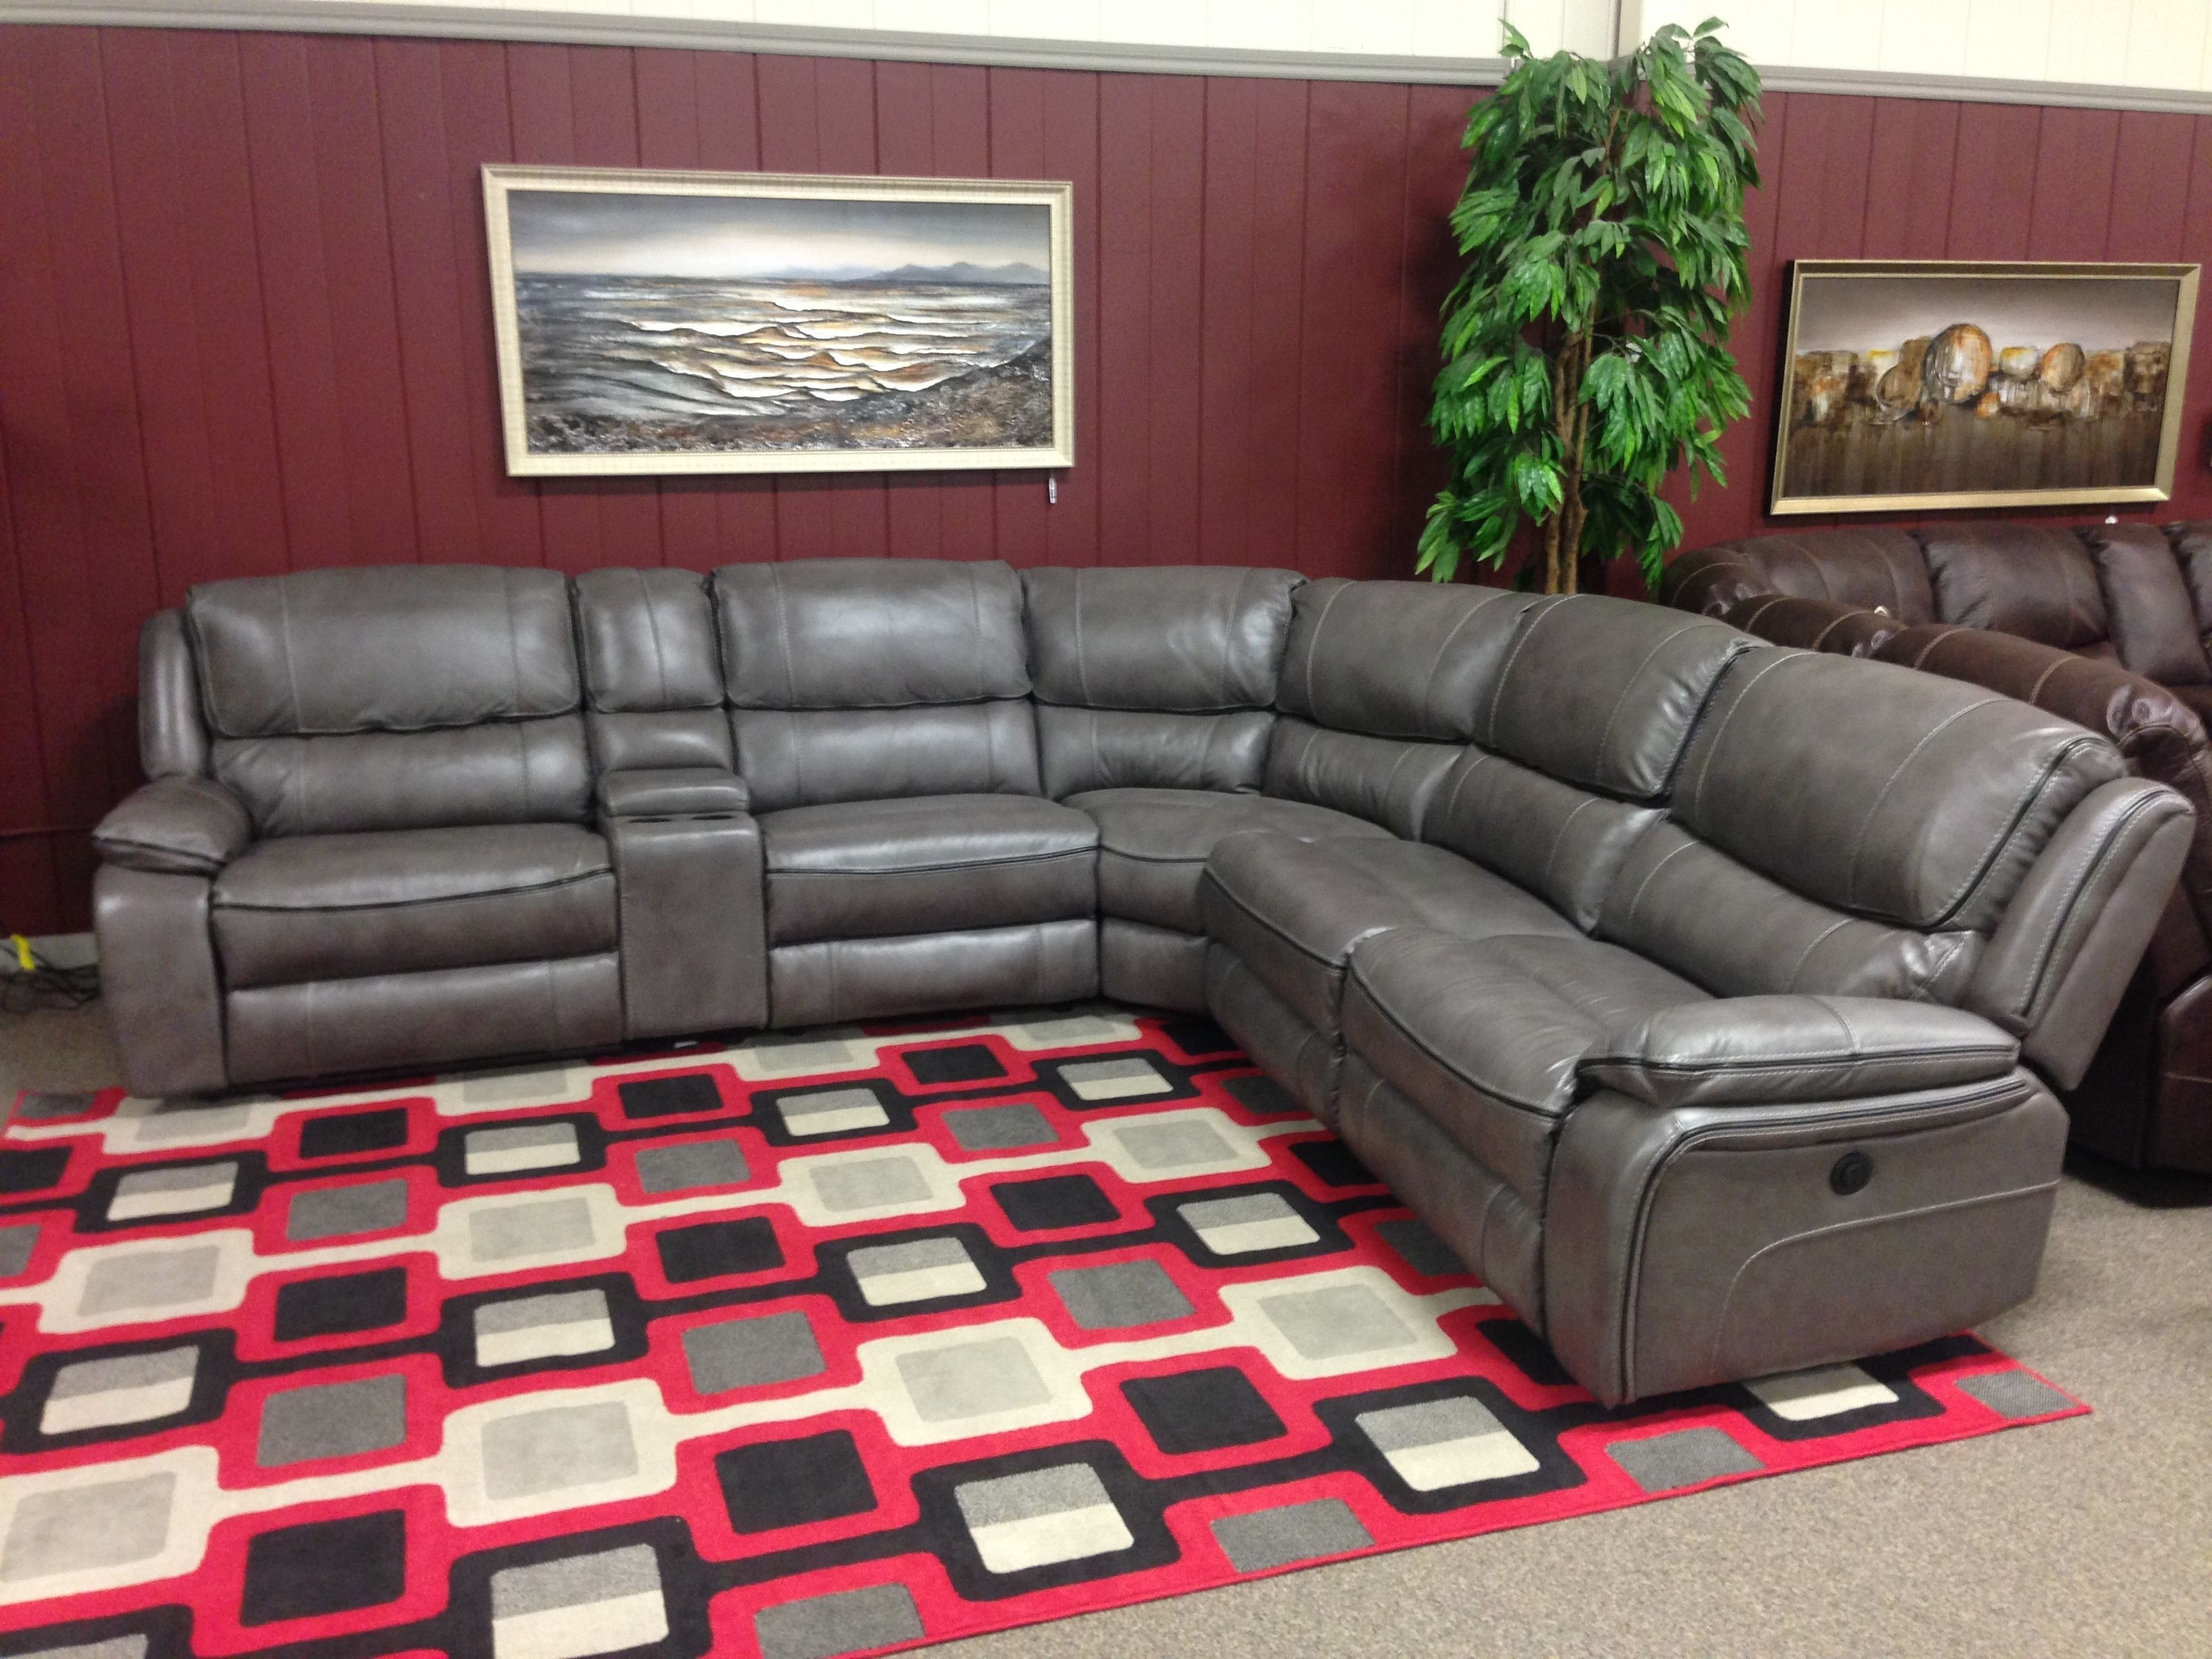 Grey Leather Reclining Sectional Travis Dk 6 Piece Power W Pwr Hdrst Pertaining To Clyde Grey Leather 3 Piece Power Reclining Sectionals With Pwr Hdrst & Usb (Image 13 of 25)